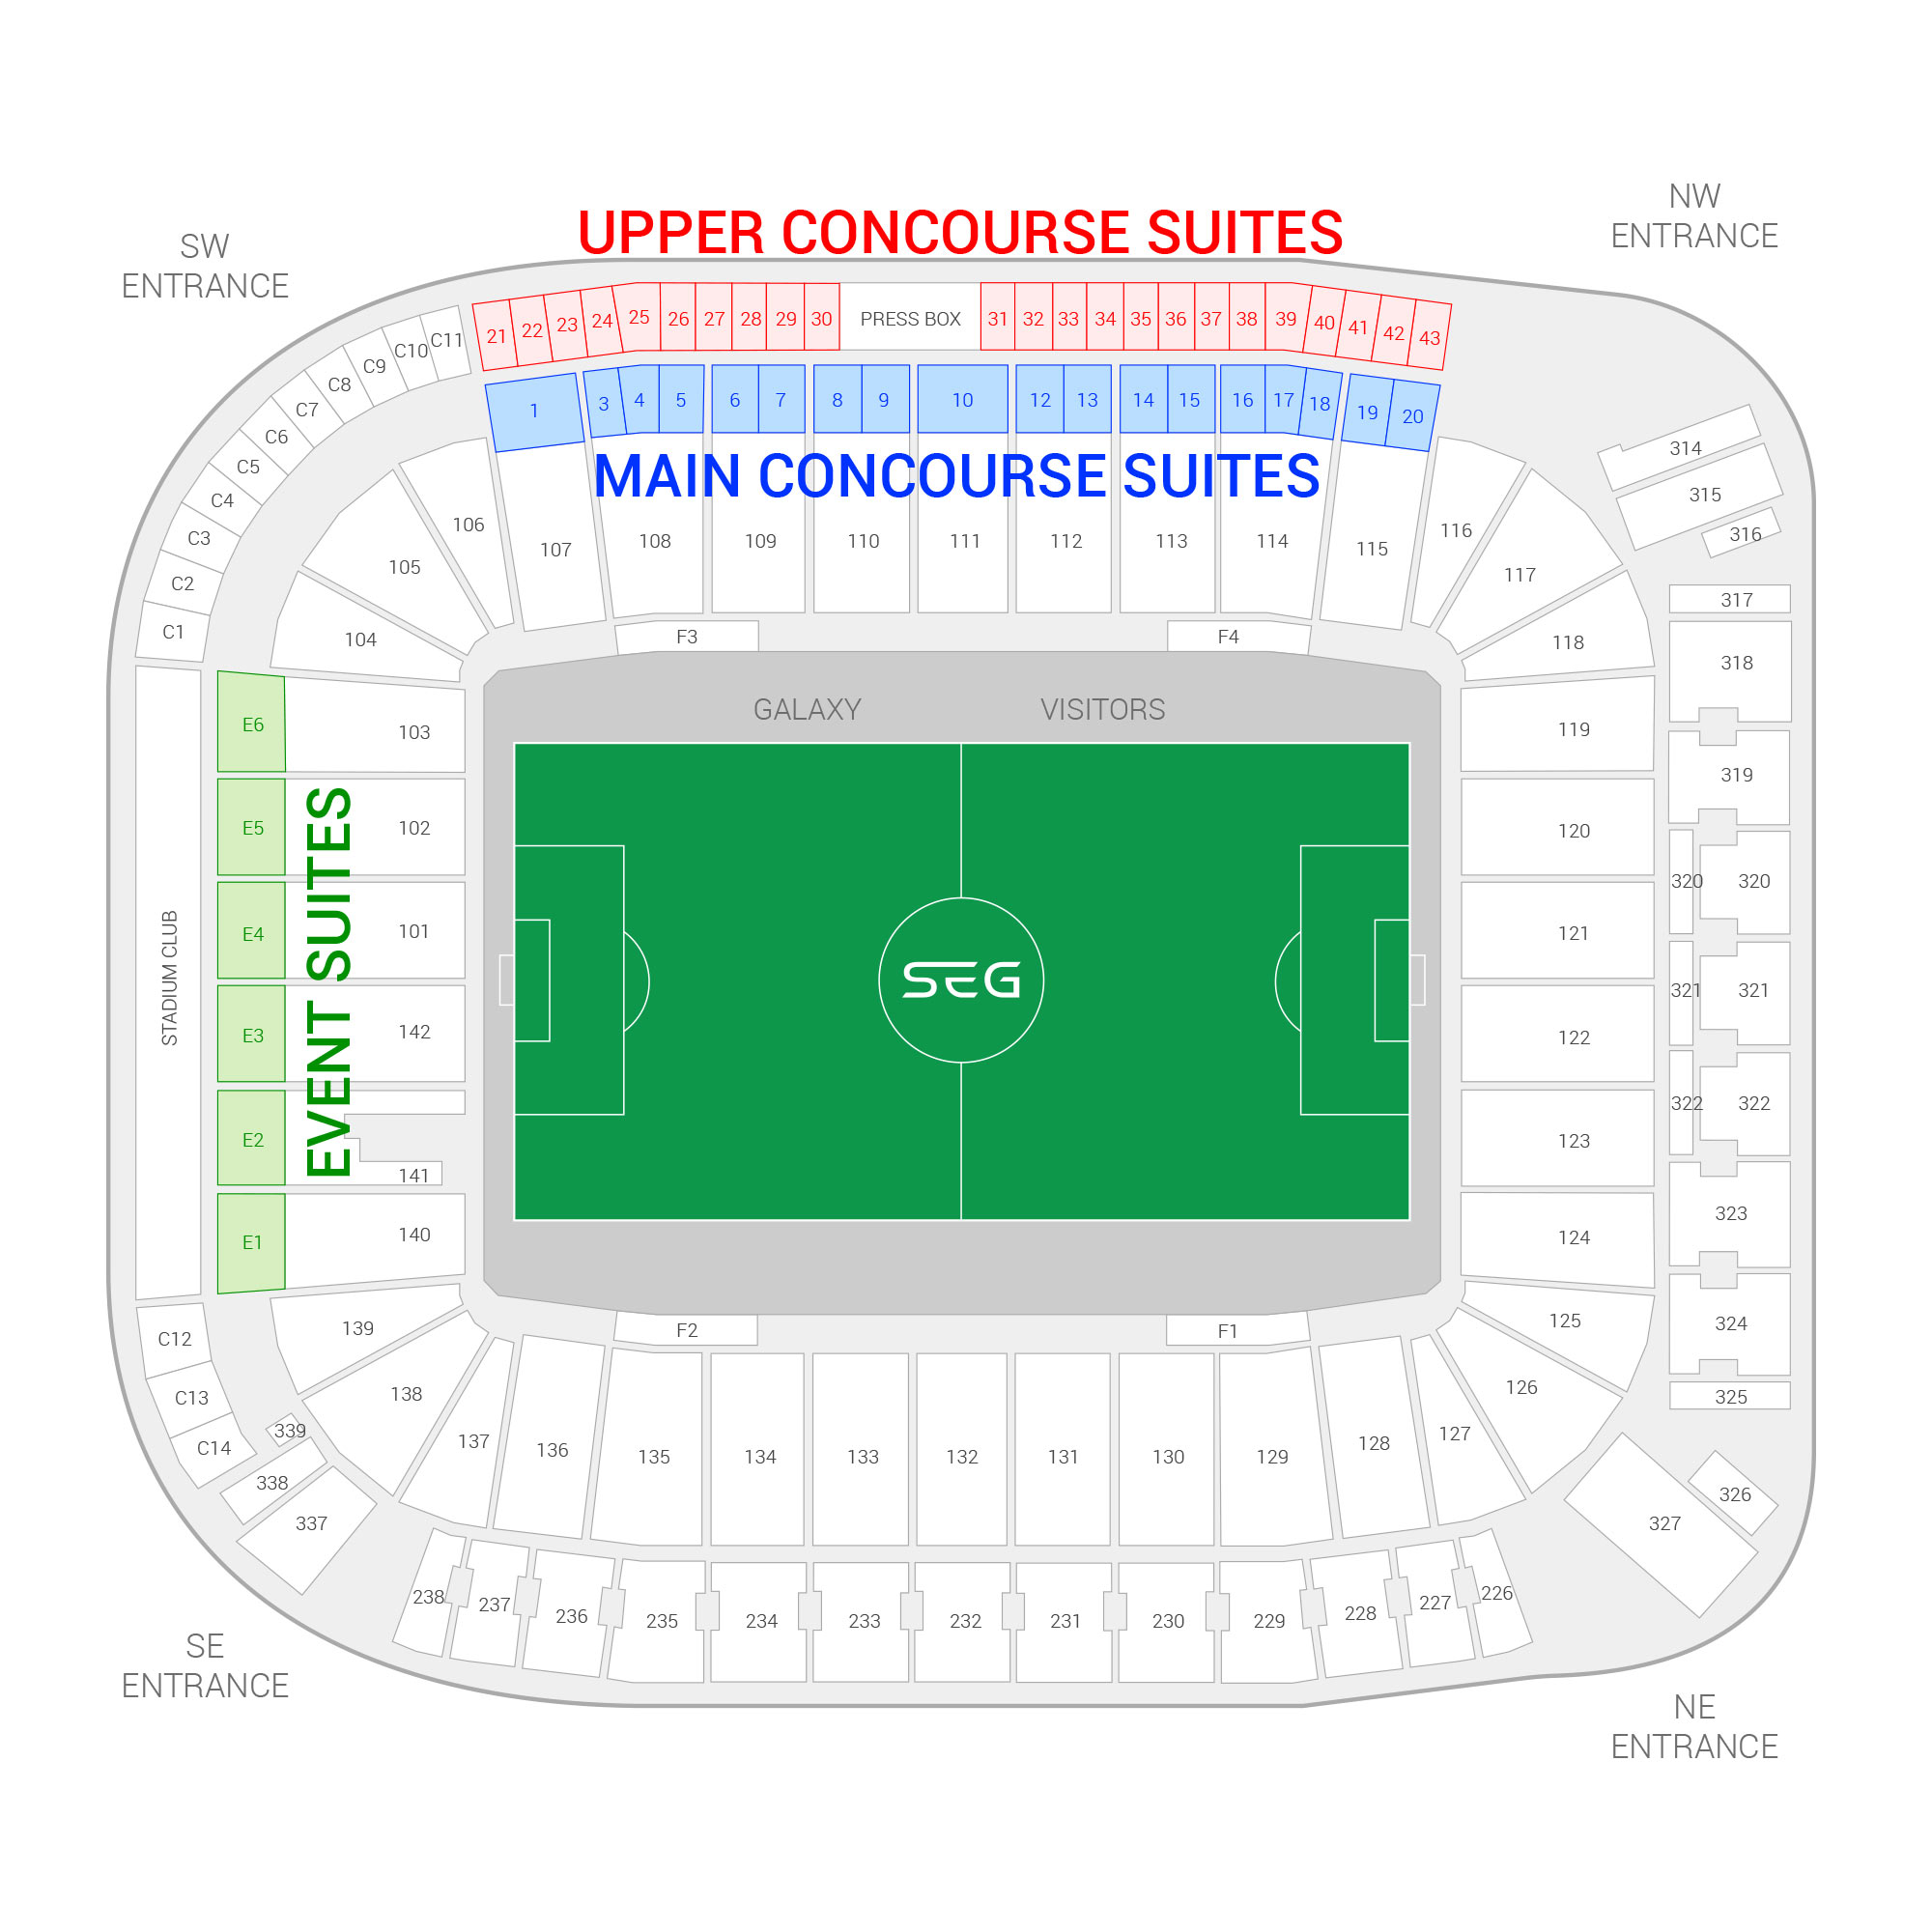 Dignity Health Sports Park / Los Angeles Galaxy Suite Map and Seating Chart